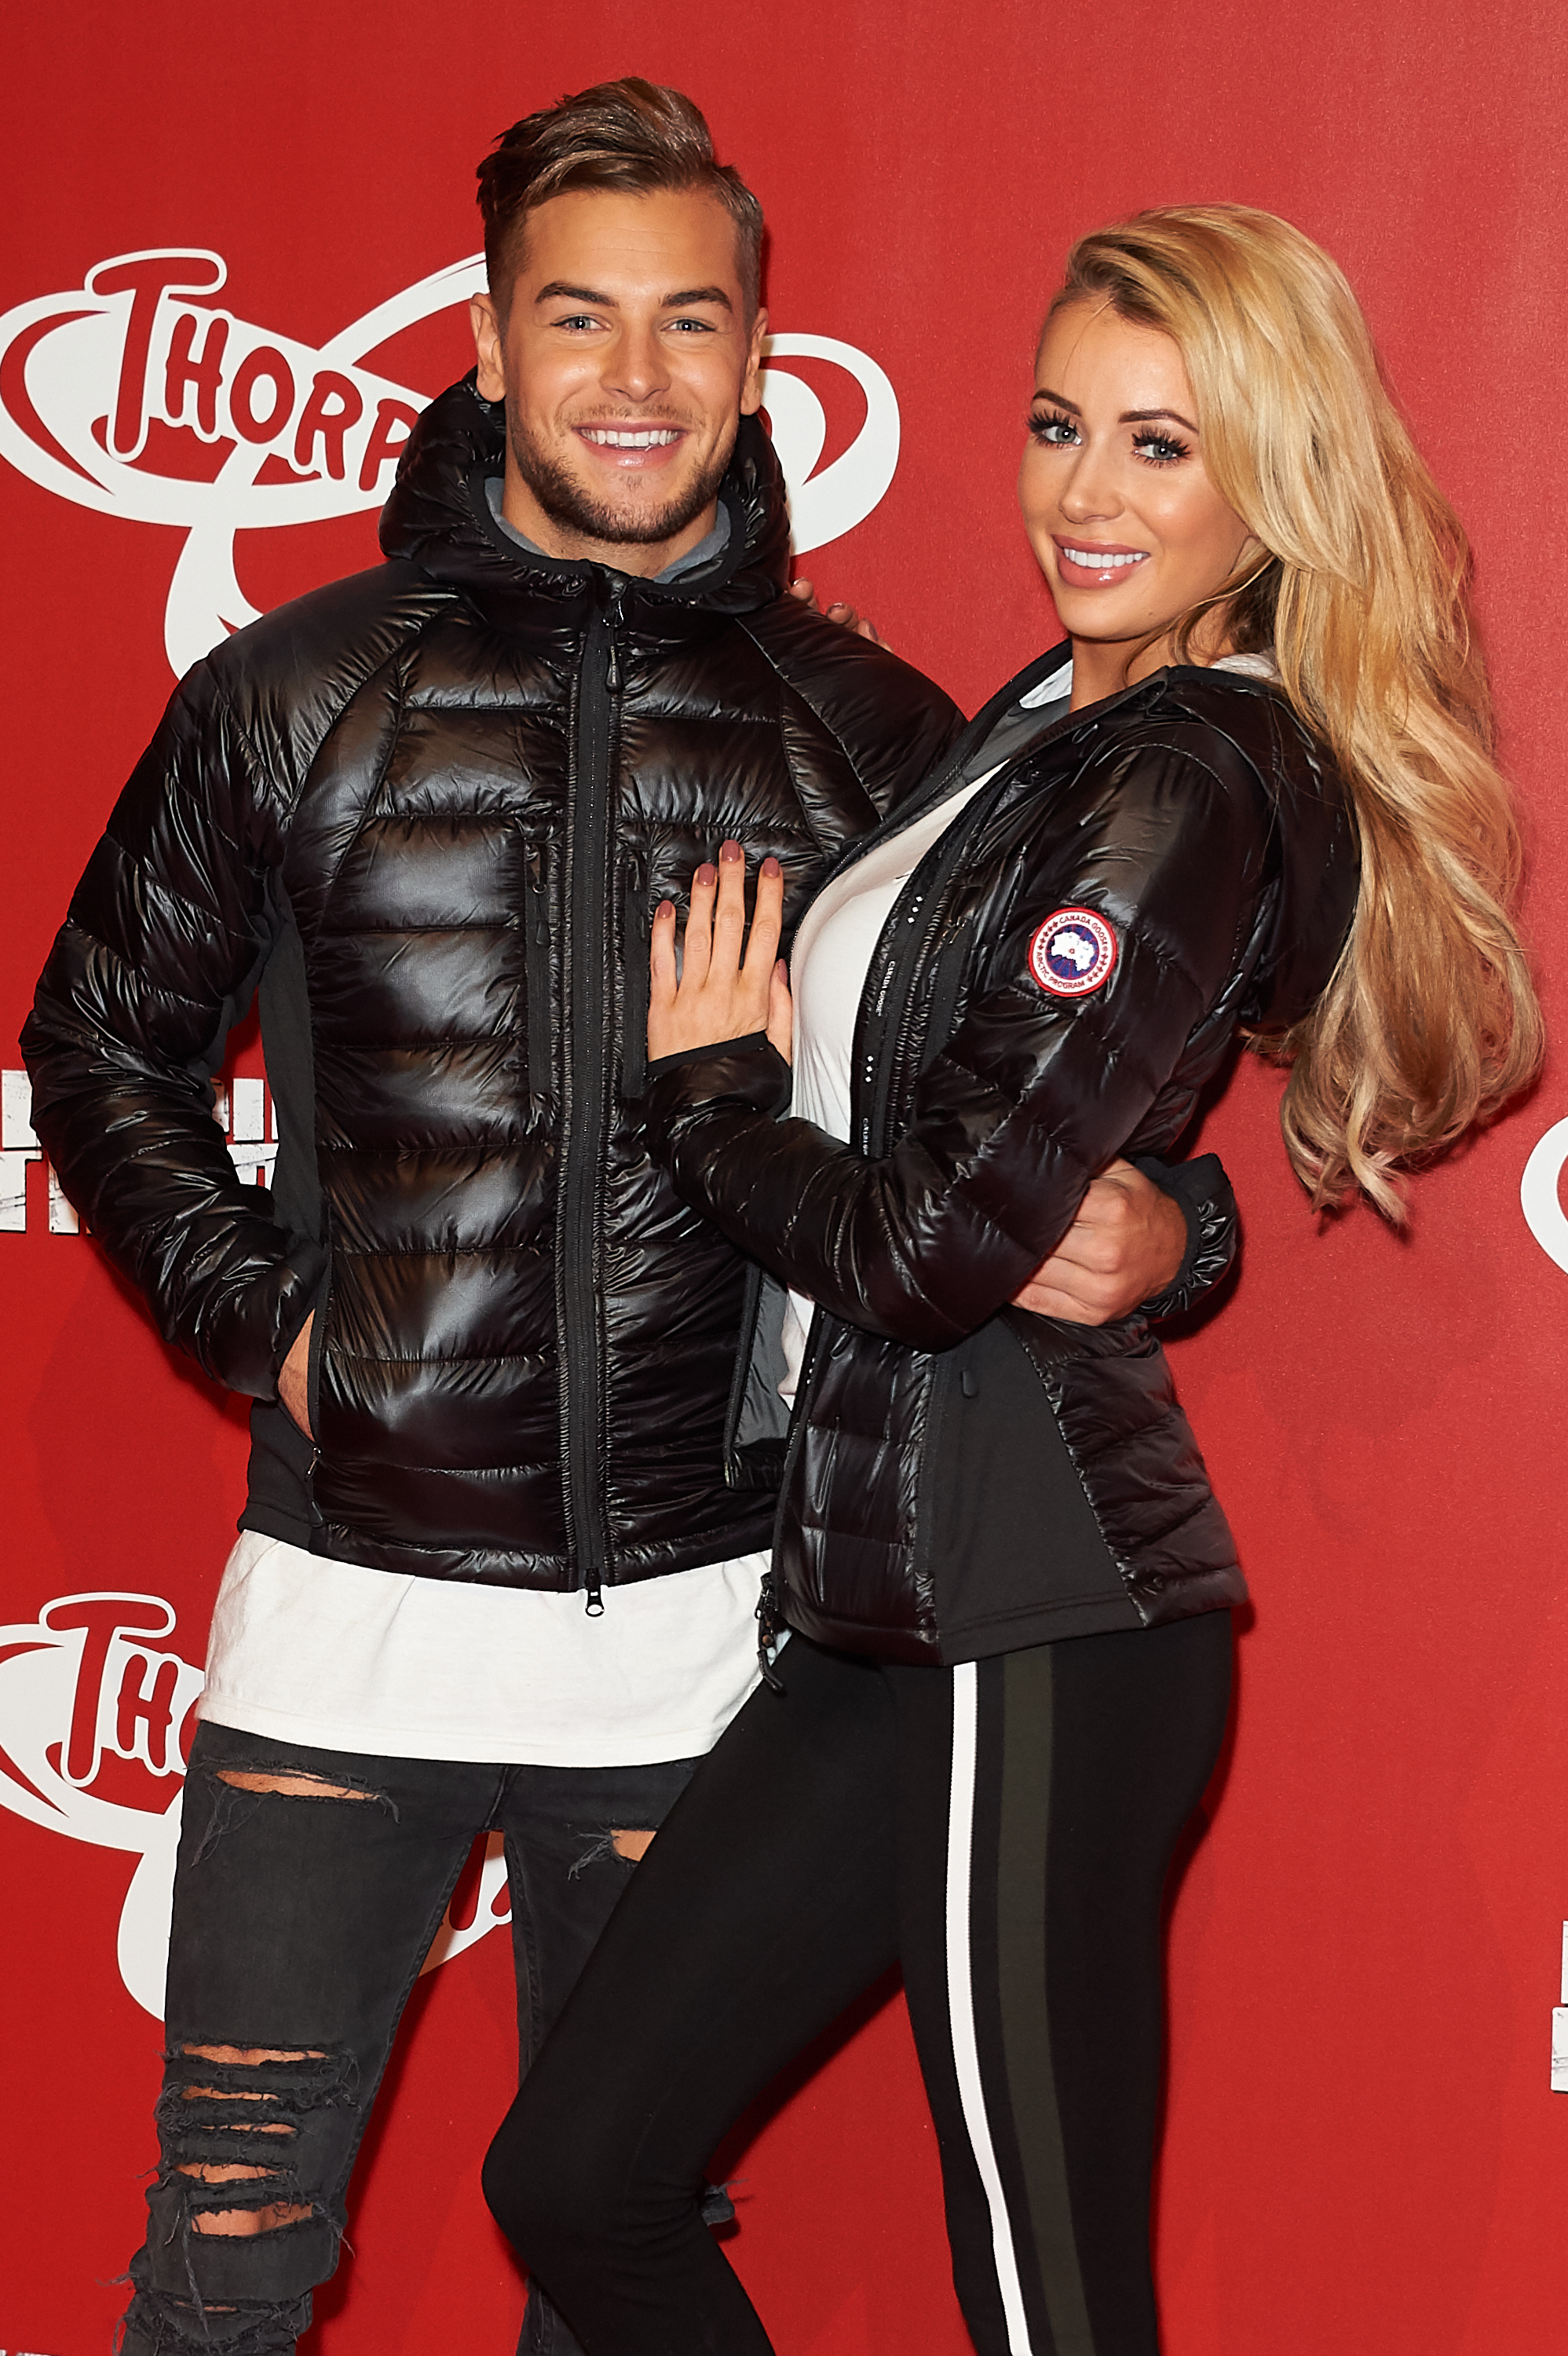 Chris Hughes & Olivia Attwood